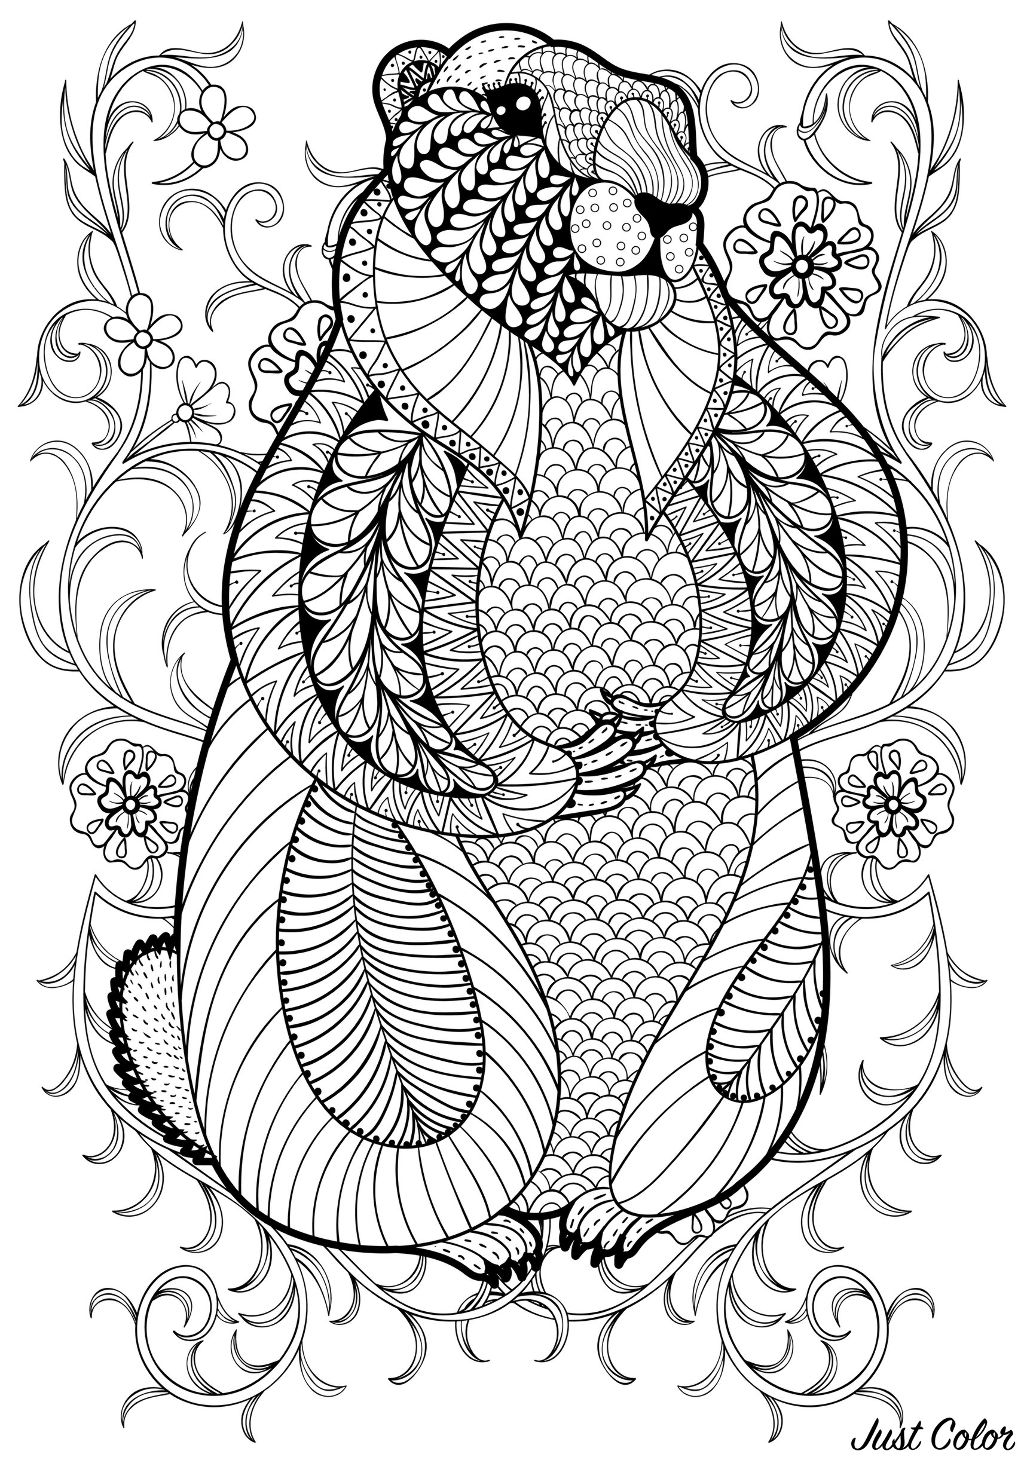 Hand drawn artistic marmot, groundhog in flowers for adult coloring page